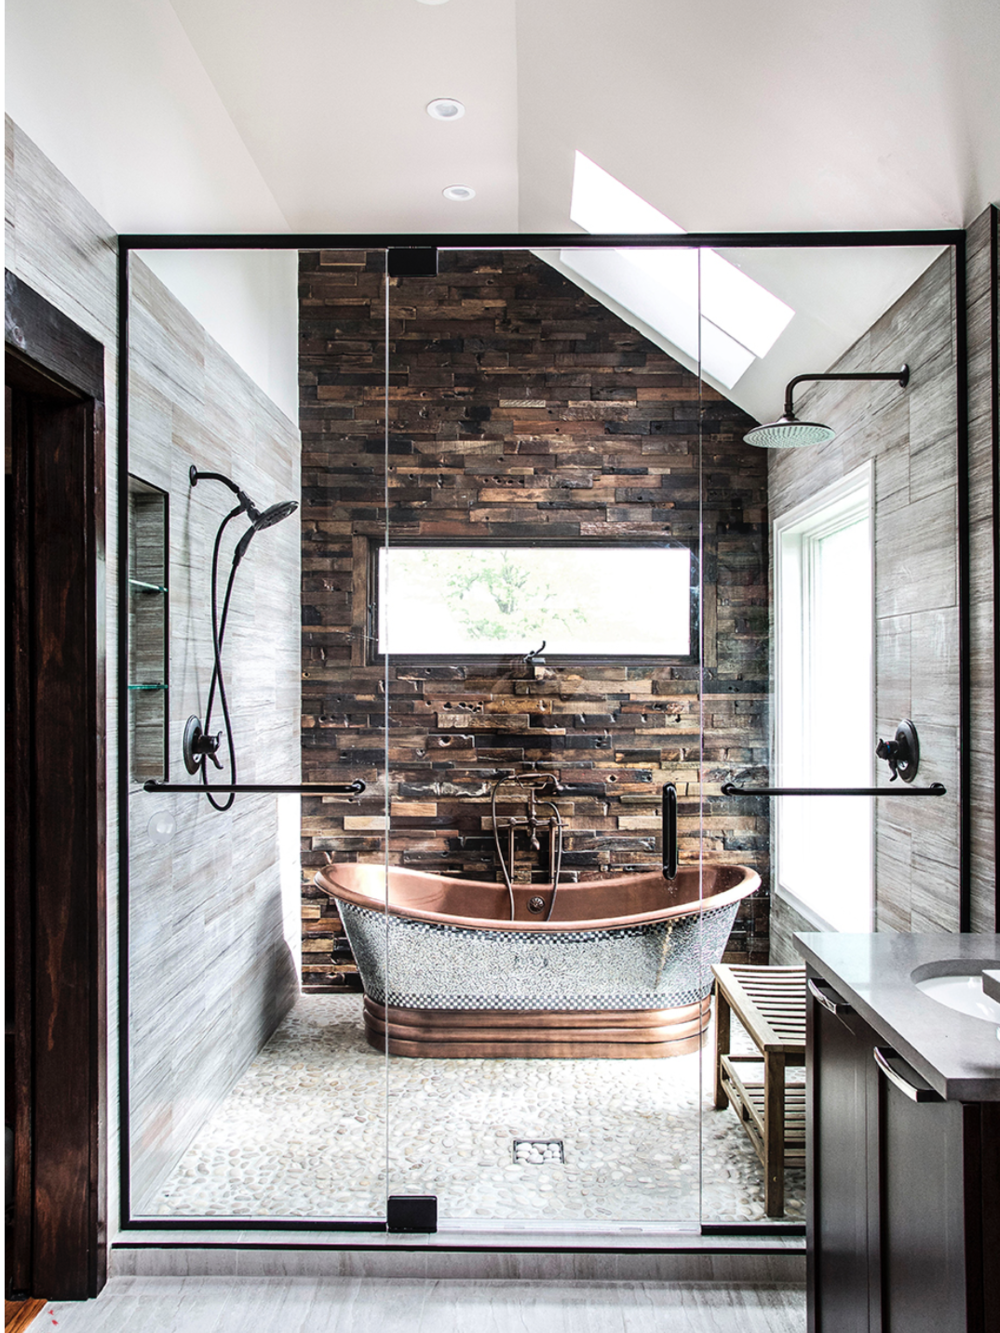 The 15 Most Beautiful Bathrooms On Pinterest Sanctuary Home